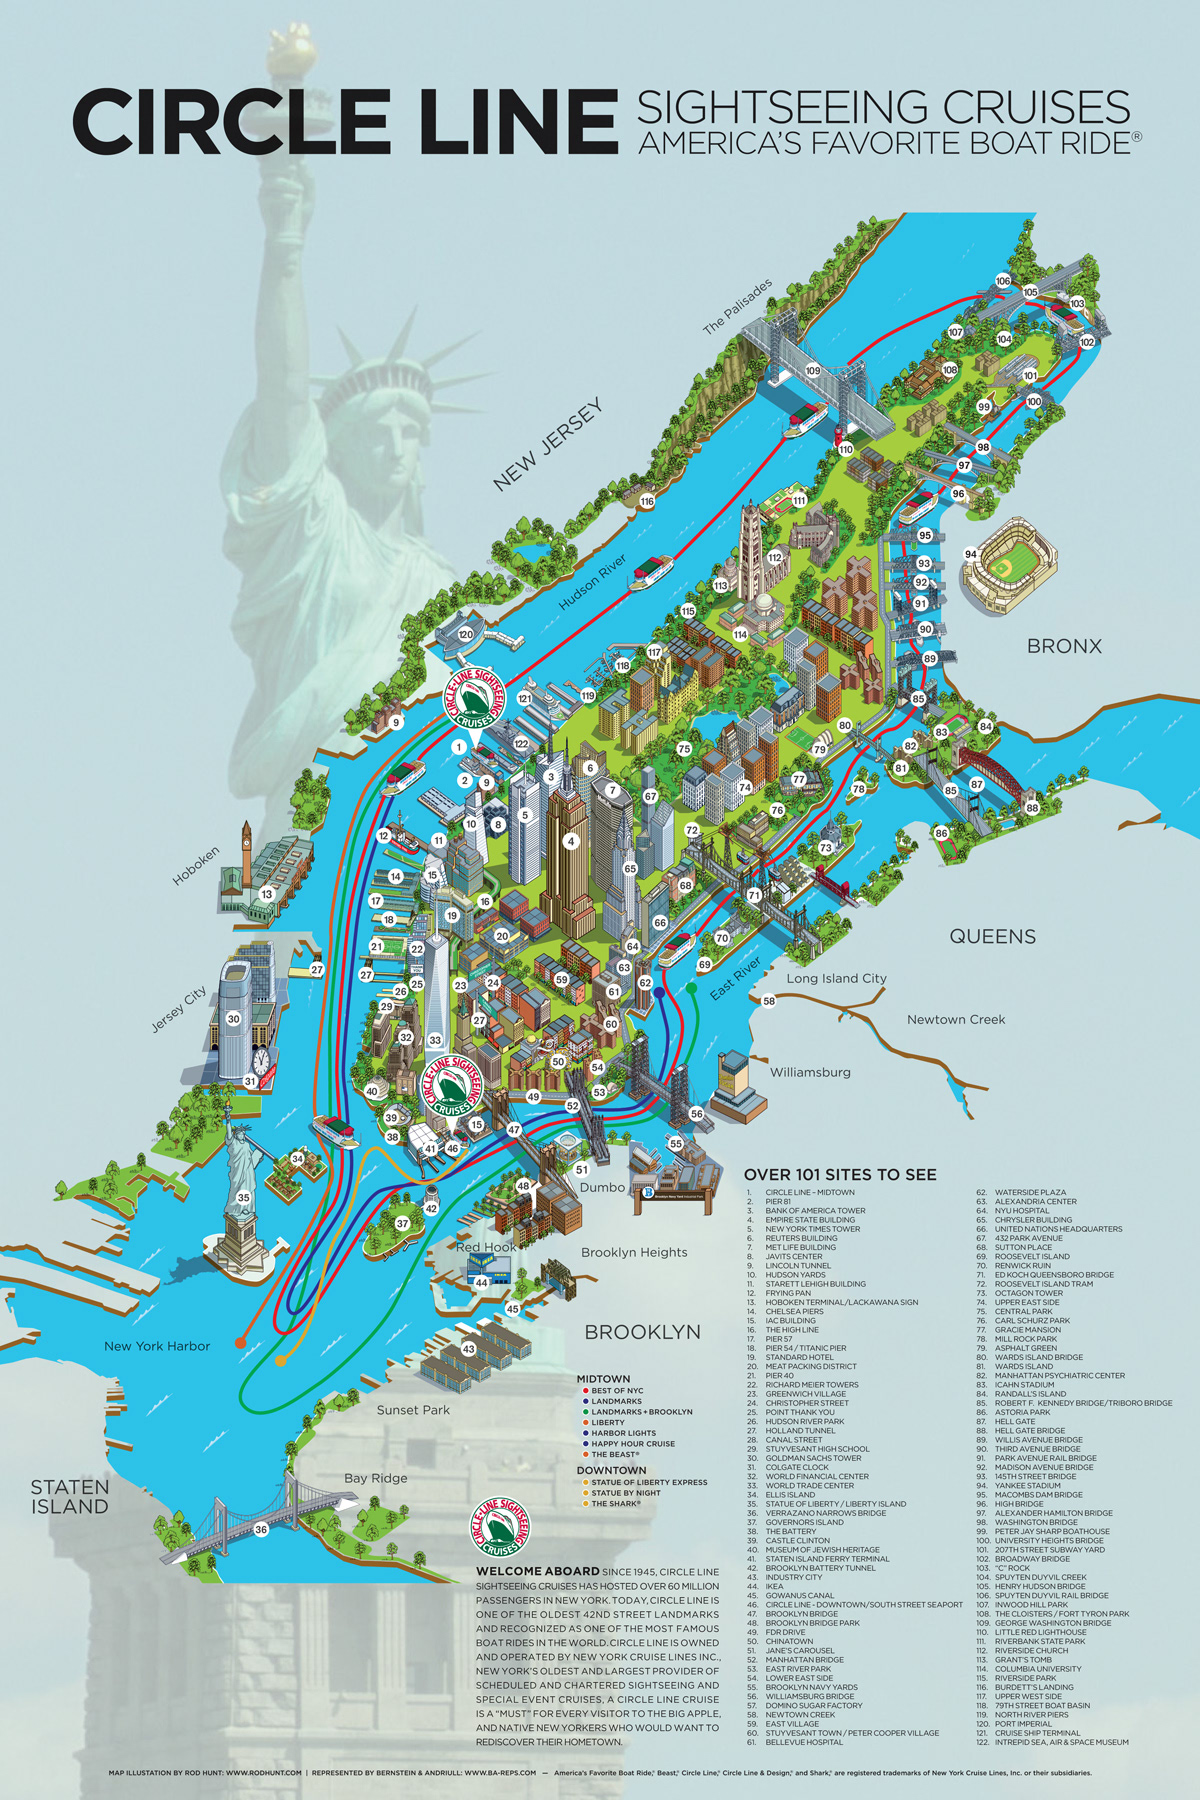 Rod Hunt Illustration And Illustrated Maps Map Illustrator Isometric Illustrations Cityscapes Infographics Animation New York City Map Illustration Circle Line Cruises